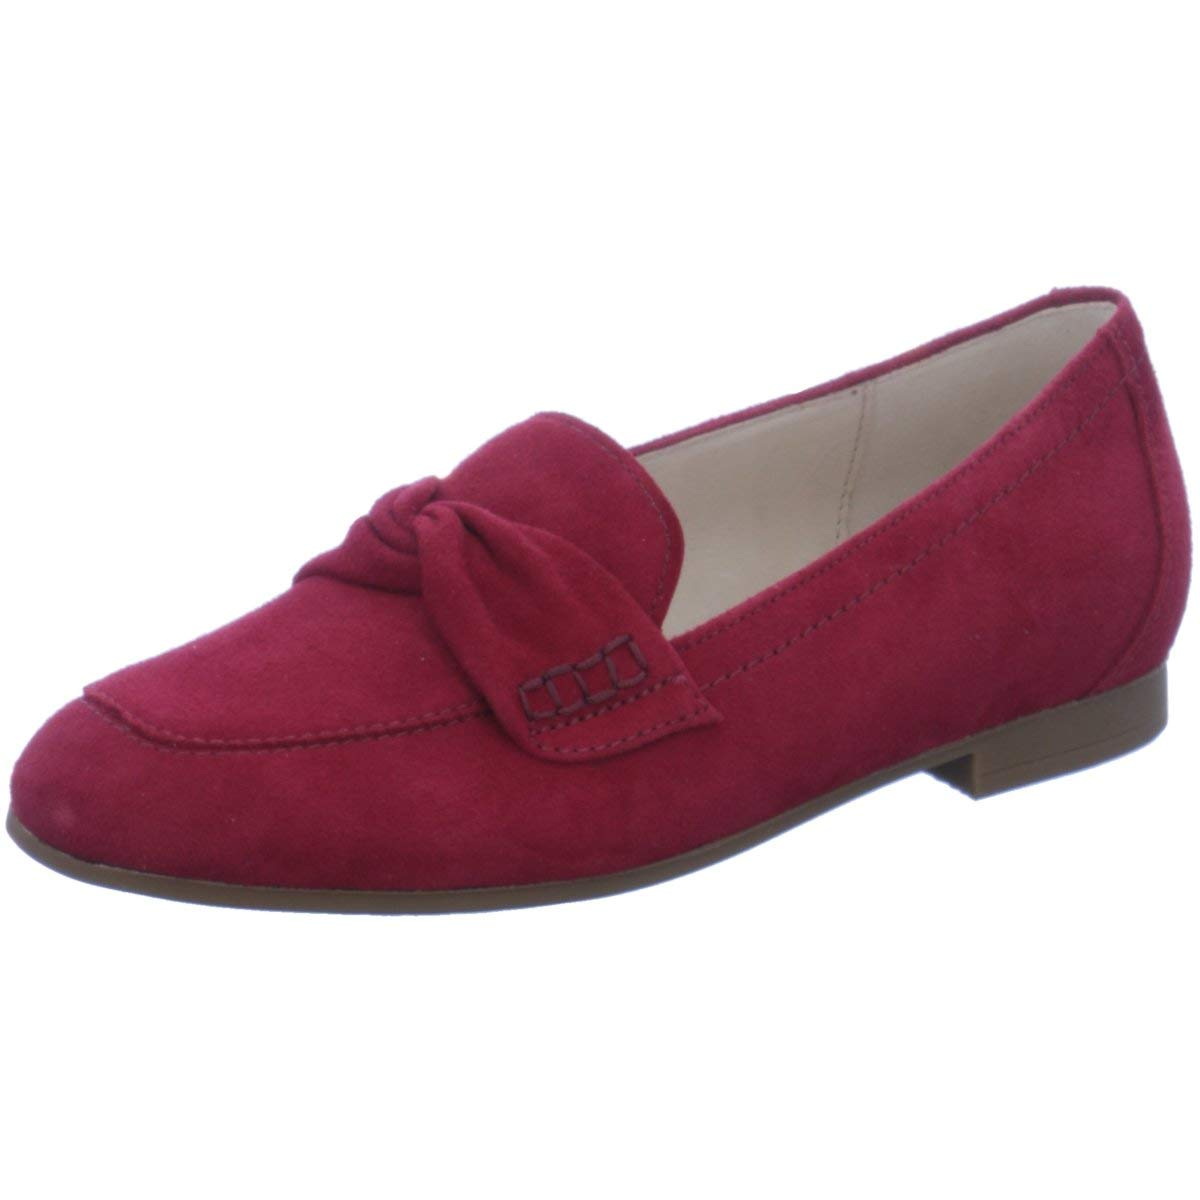 Gabor Damen Slipper NV 24.213.15 rot 625244